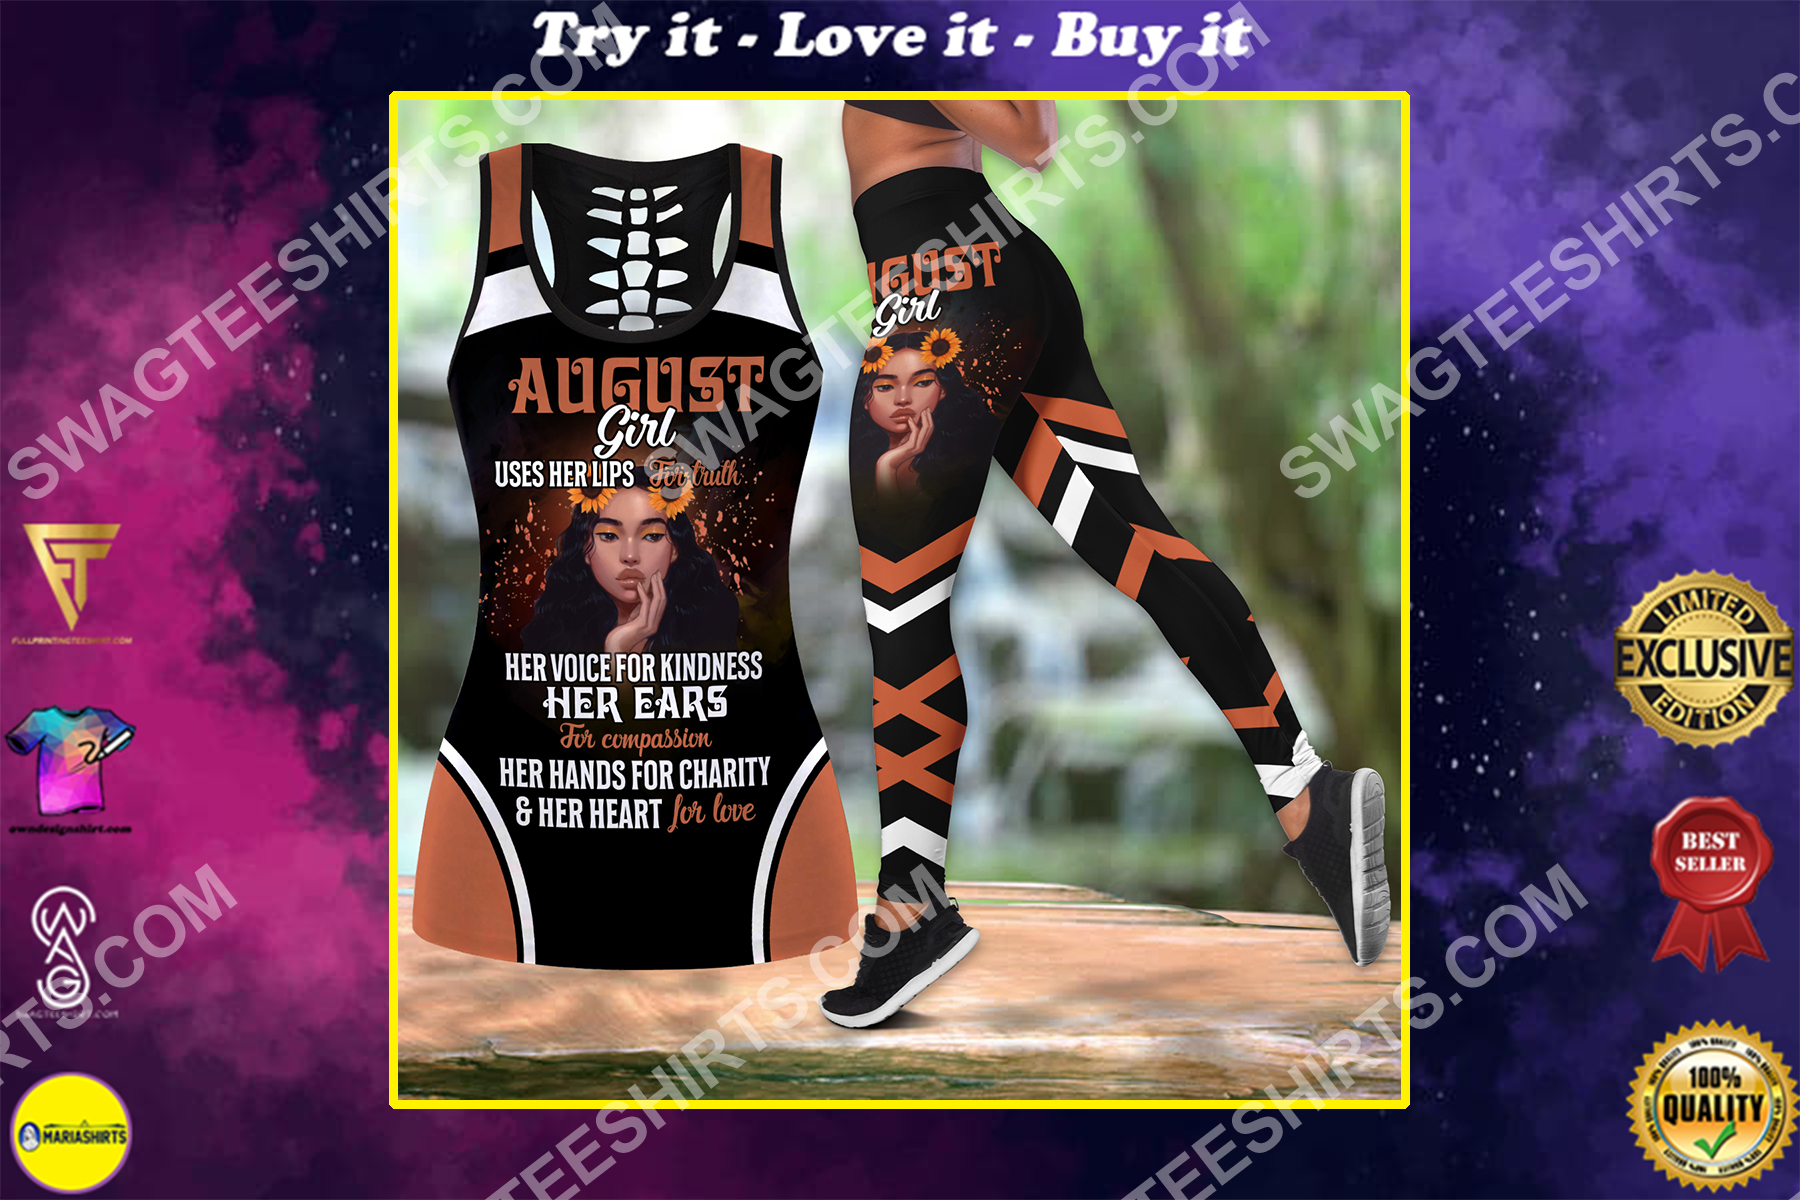 august girl uses her lips for truth birthday gift set sports outfit